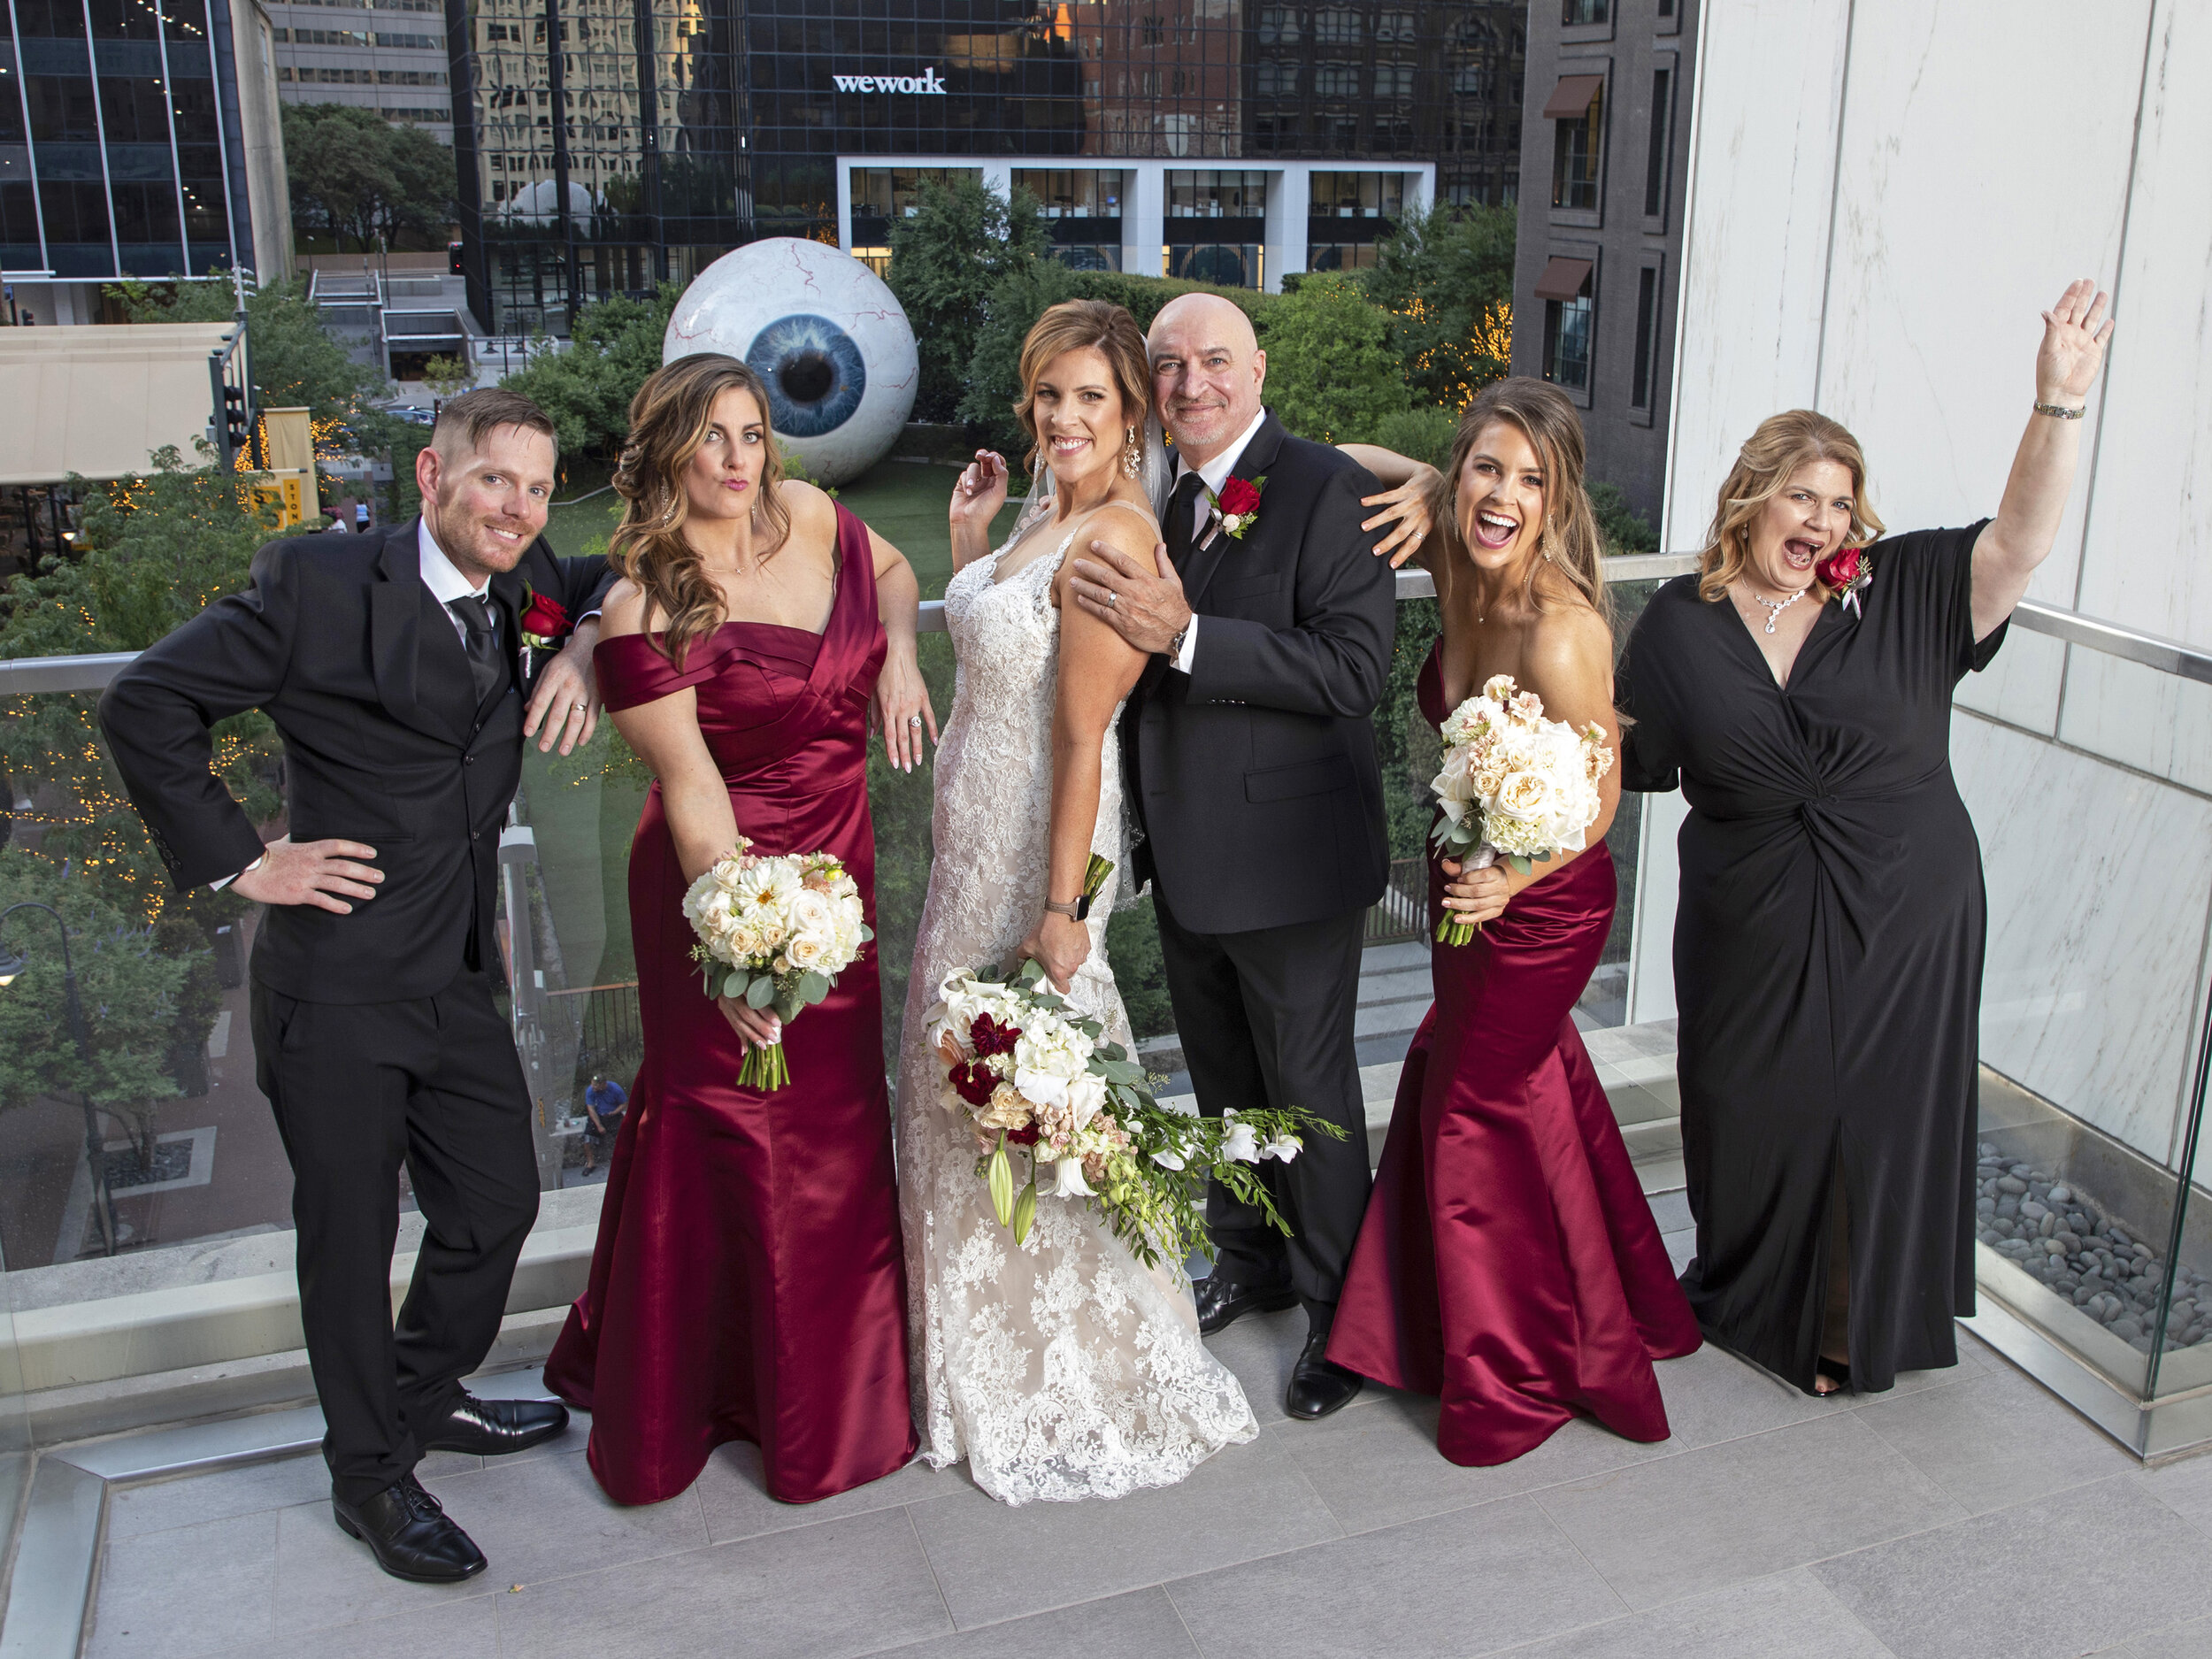 Christ and Terry got married at The Joule Hotel across the street from the Dallas Eye, great hotel!!